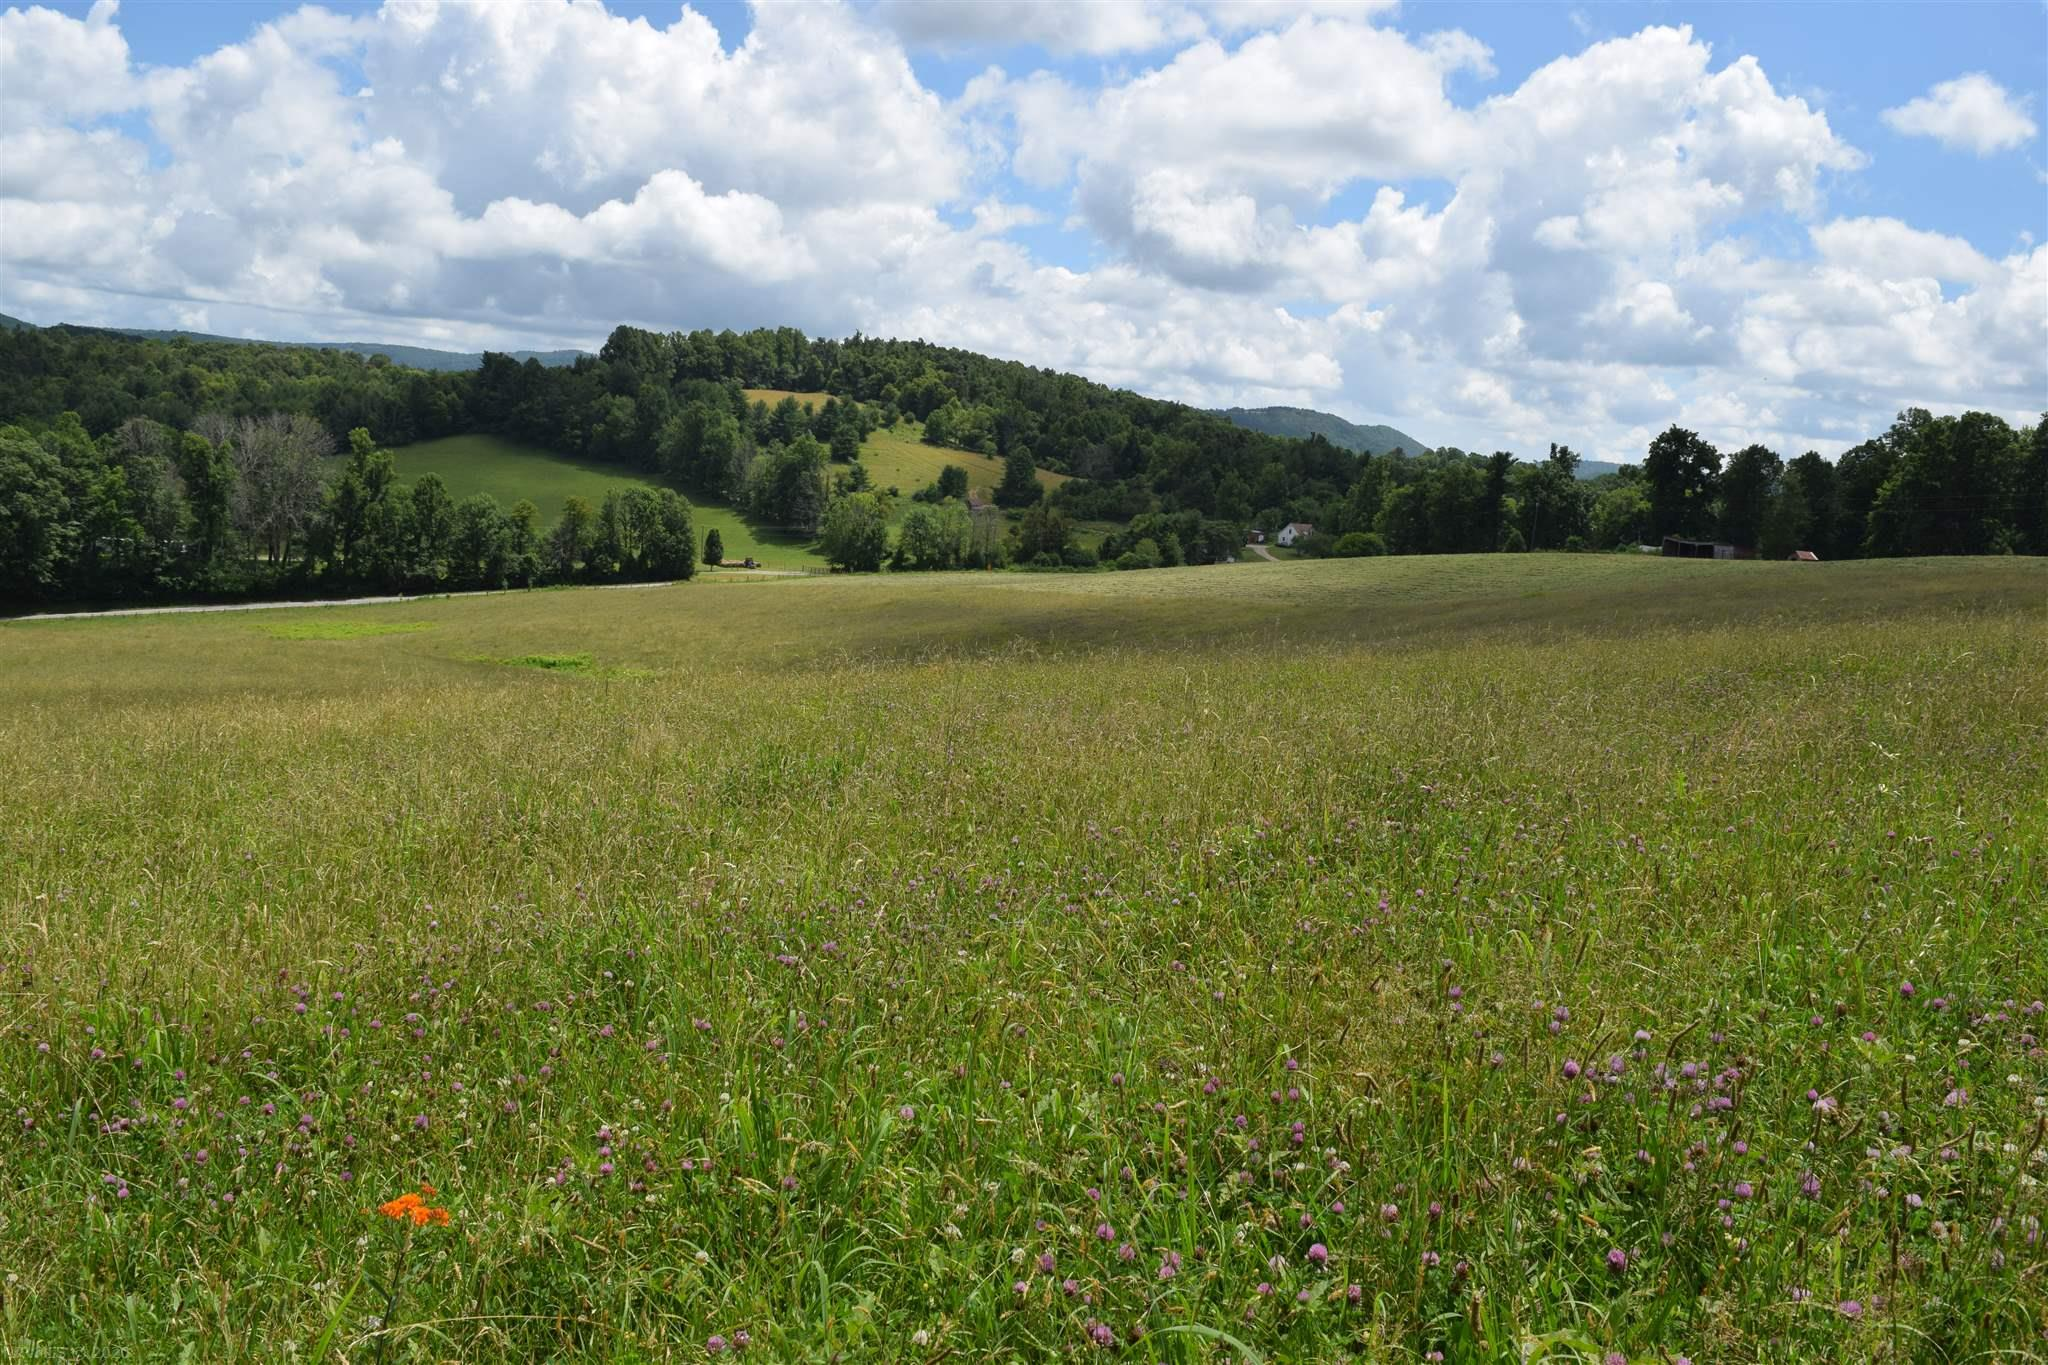 This picturesque land provides opportunities for a building site, farmland, and recreation/hunting.  The rolling hills and spring water on the property makes it suitable for livestock.  A barn is located on the property and is perfect for storing farm equipment, hay or recreational vehicles. The mountain views from the top of the property provides a perfect setting for a building site and is only minutes from the town of Floyd.  The wooded portion of this property is the perfect home for wildlife and provides ample opportunity for the avid hunter.  These 35 acres are a great farmland addition for the farmer or perfect for the family looking for the picture perfect property to build their home.  No restrictions on this property!